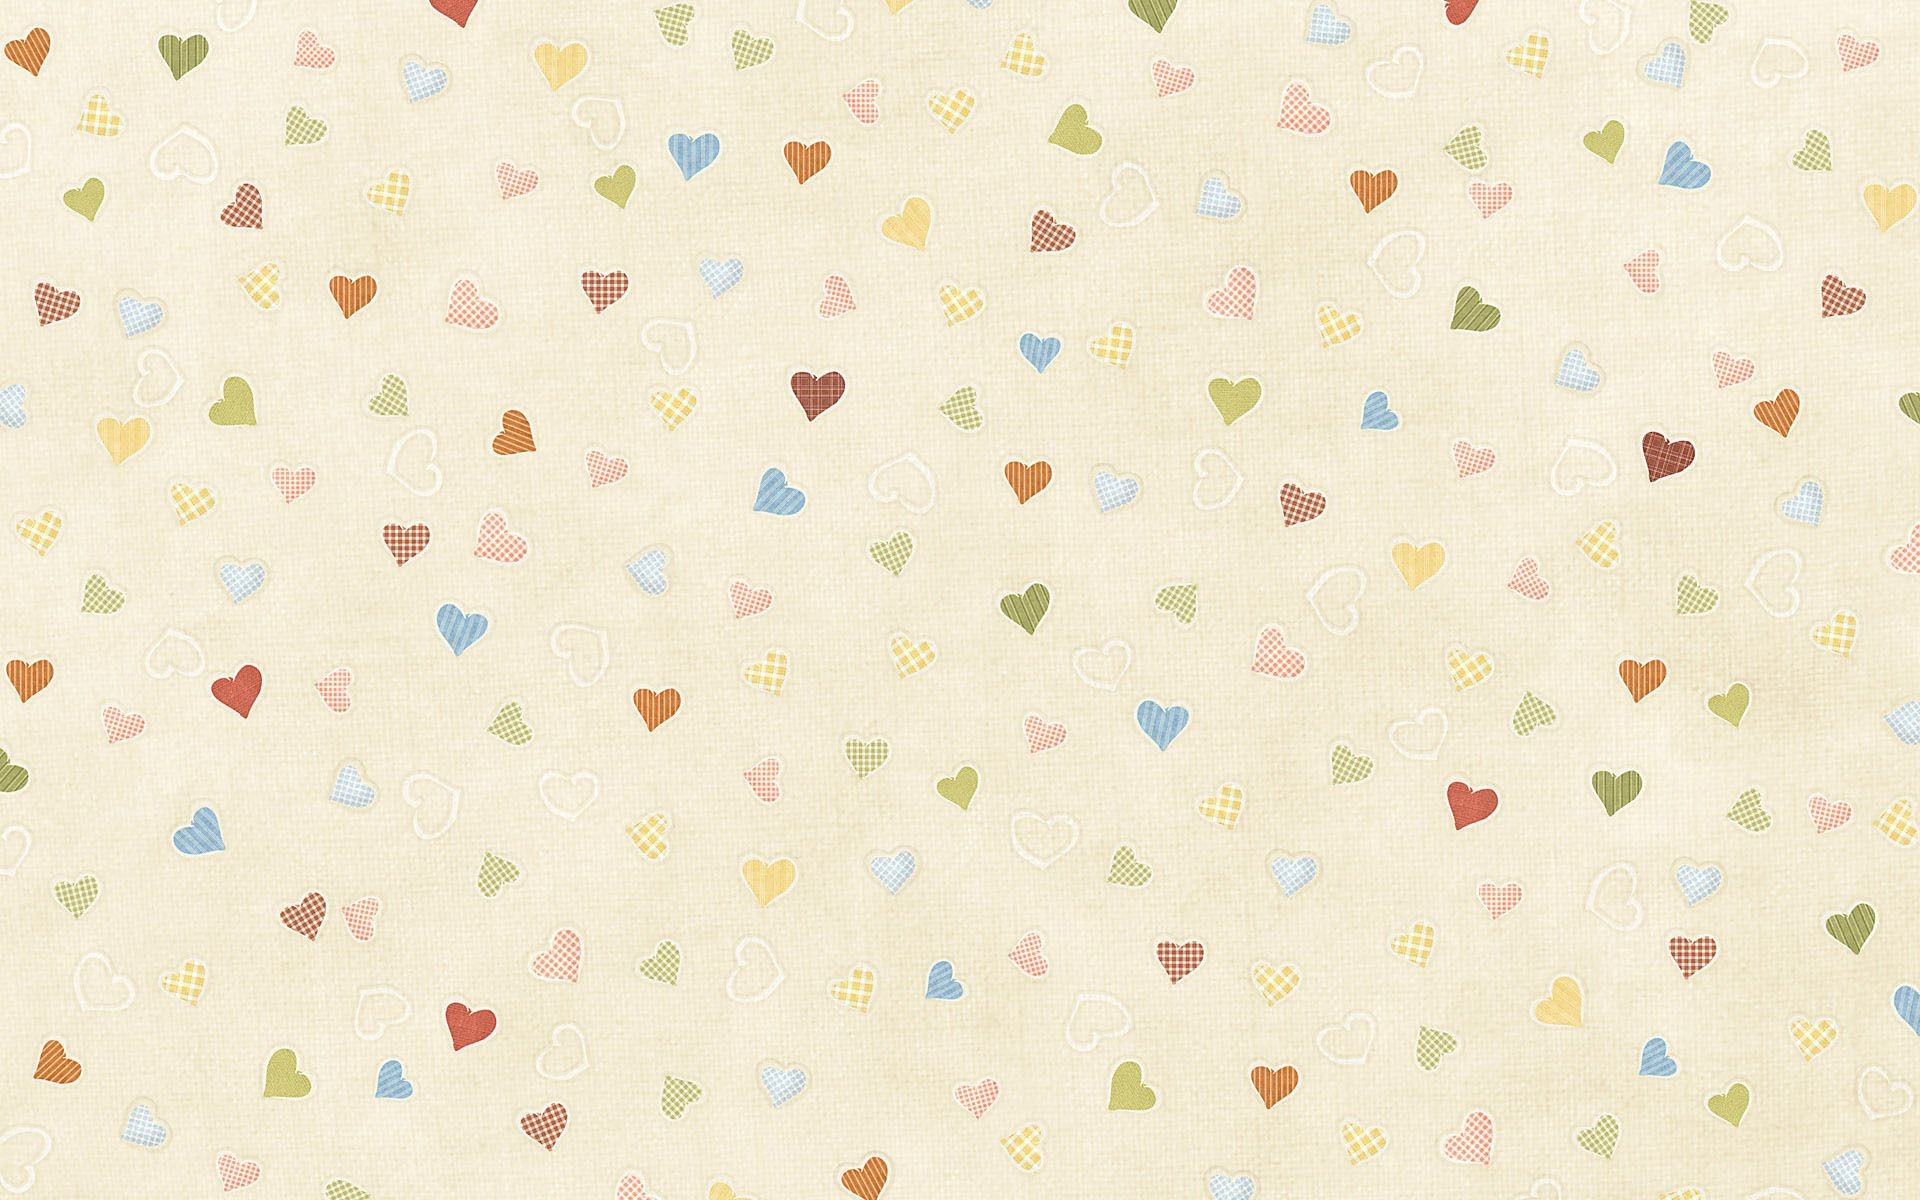 hearts pattern wallpaper repetition illustration seamless vector retro design abstract fabric texture textile decoration paper polka desktop background square art graphic